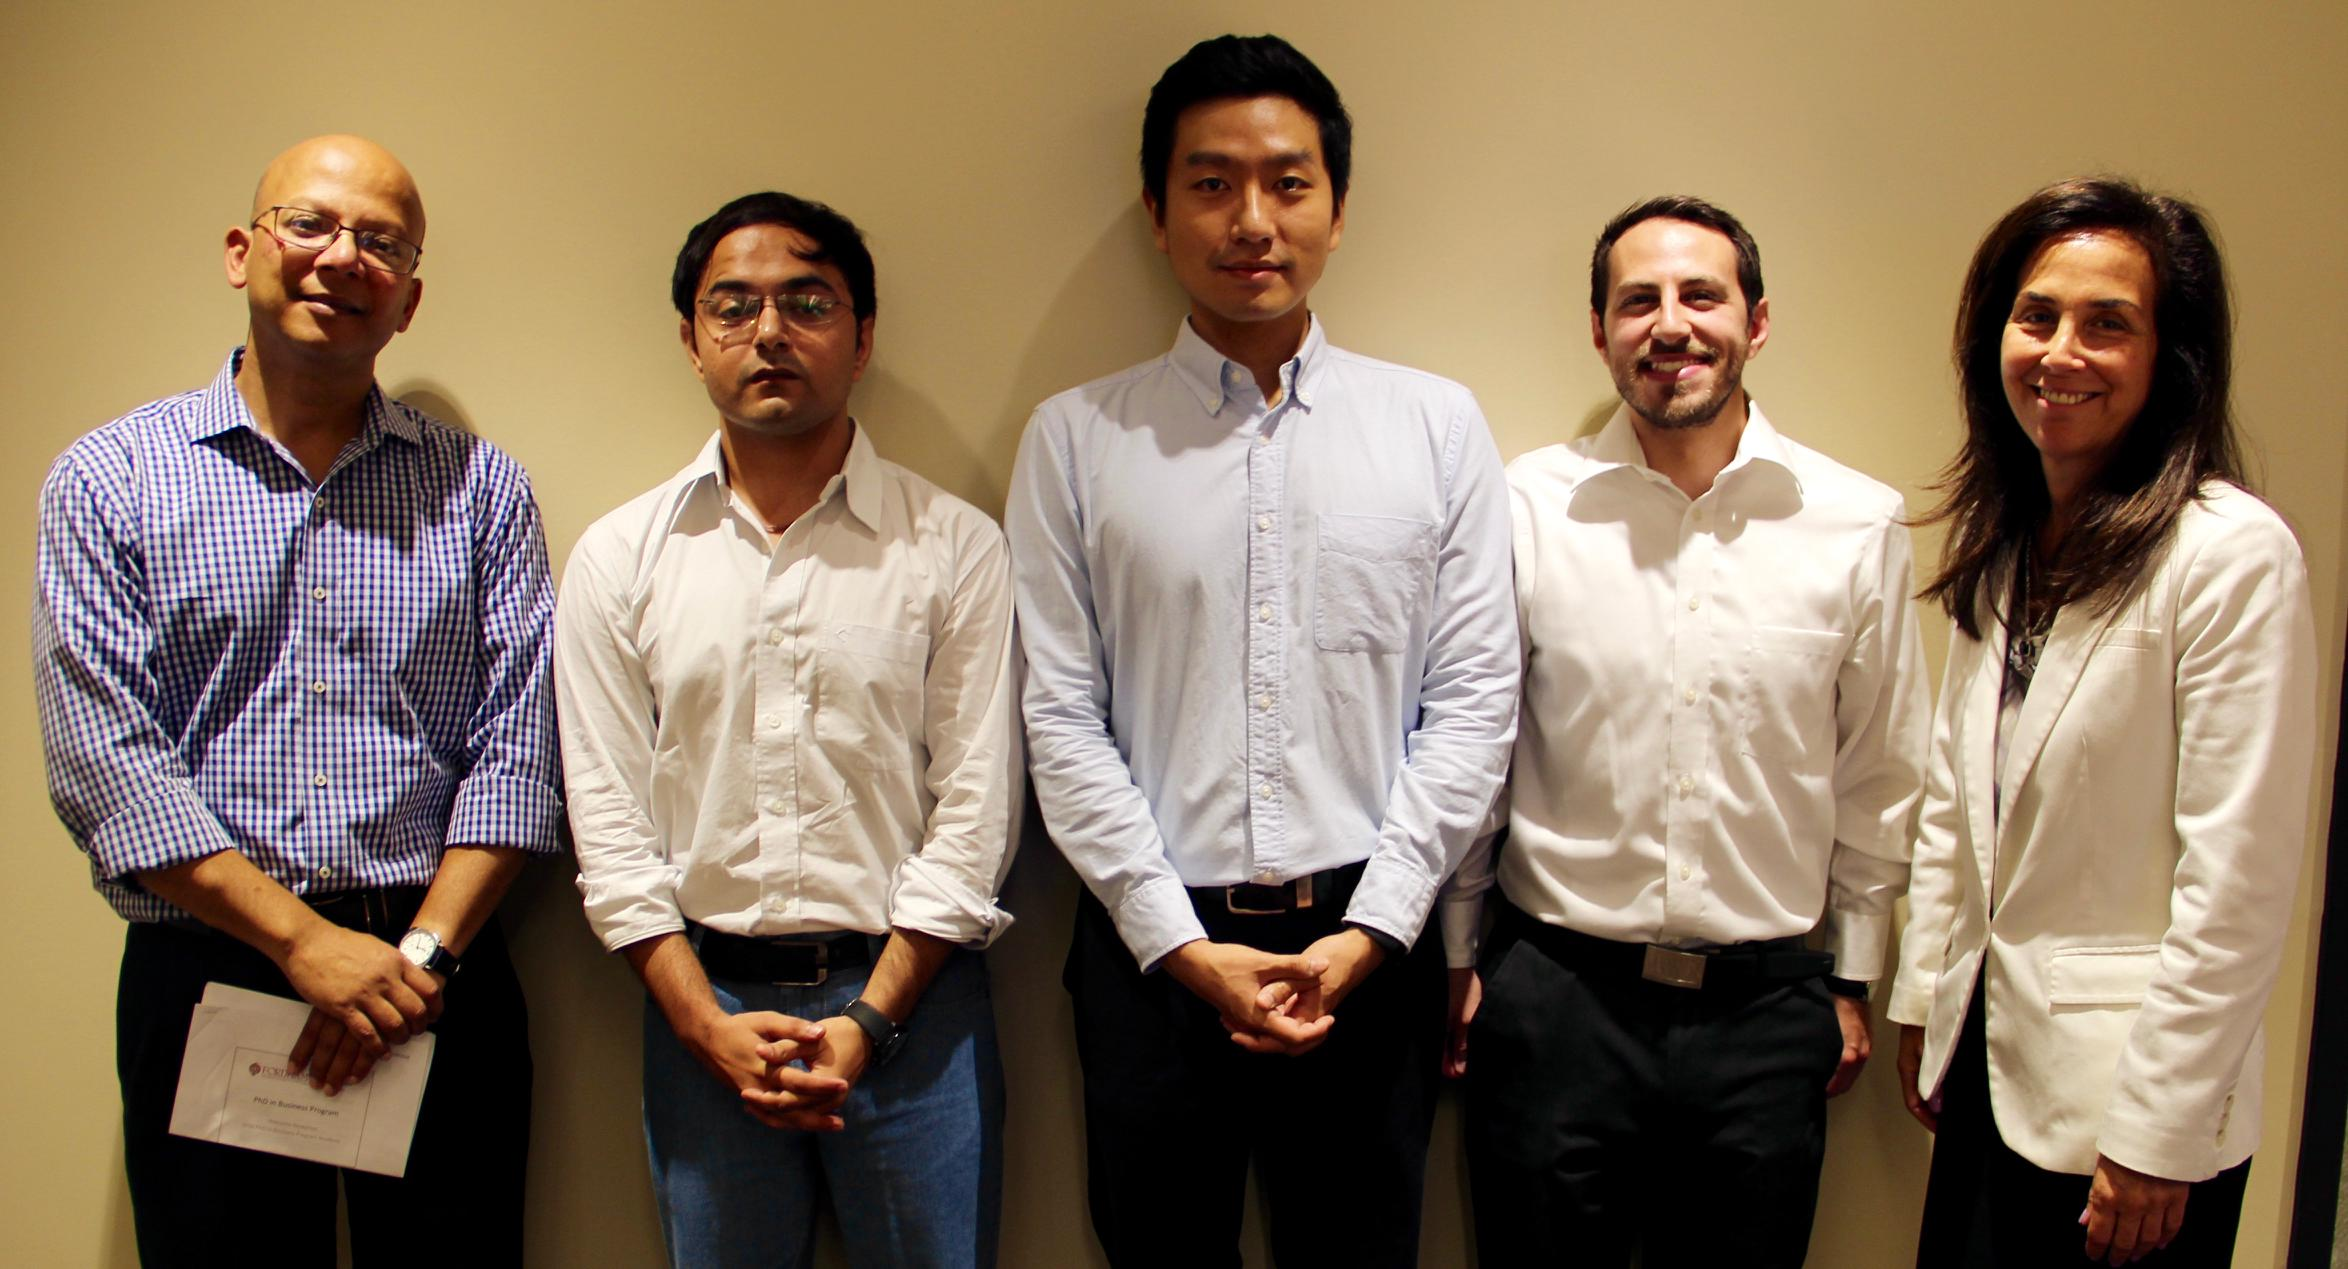 From left, Iftekhar Hasan, director of the PhD program; PhD students Jitendra Aswani, Joon Ho Kong, , and Joseph Micale; and Gabelli School Dean Donna Rapaccioli.